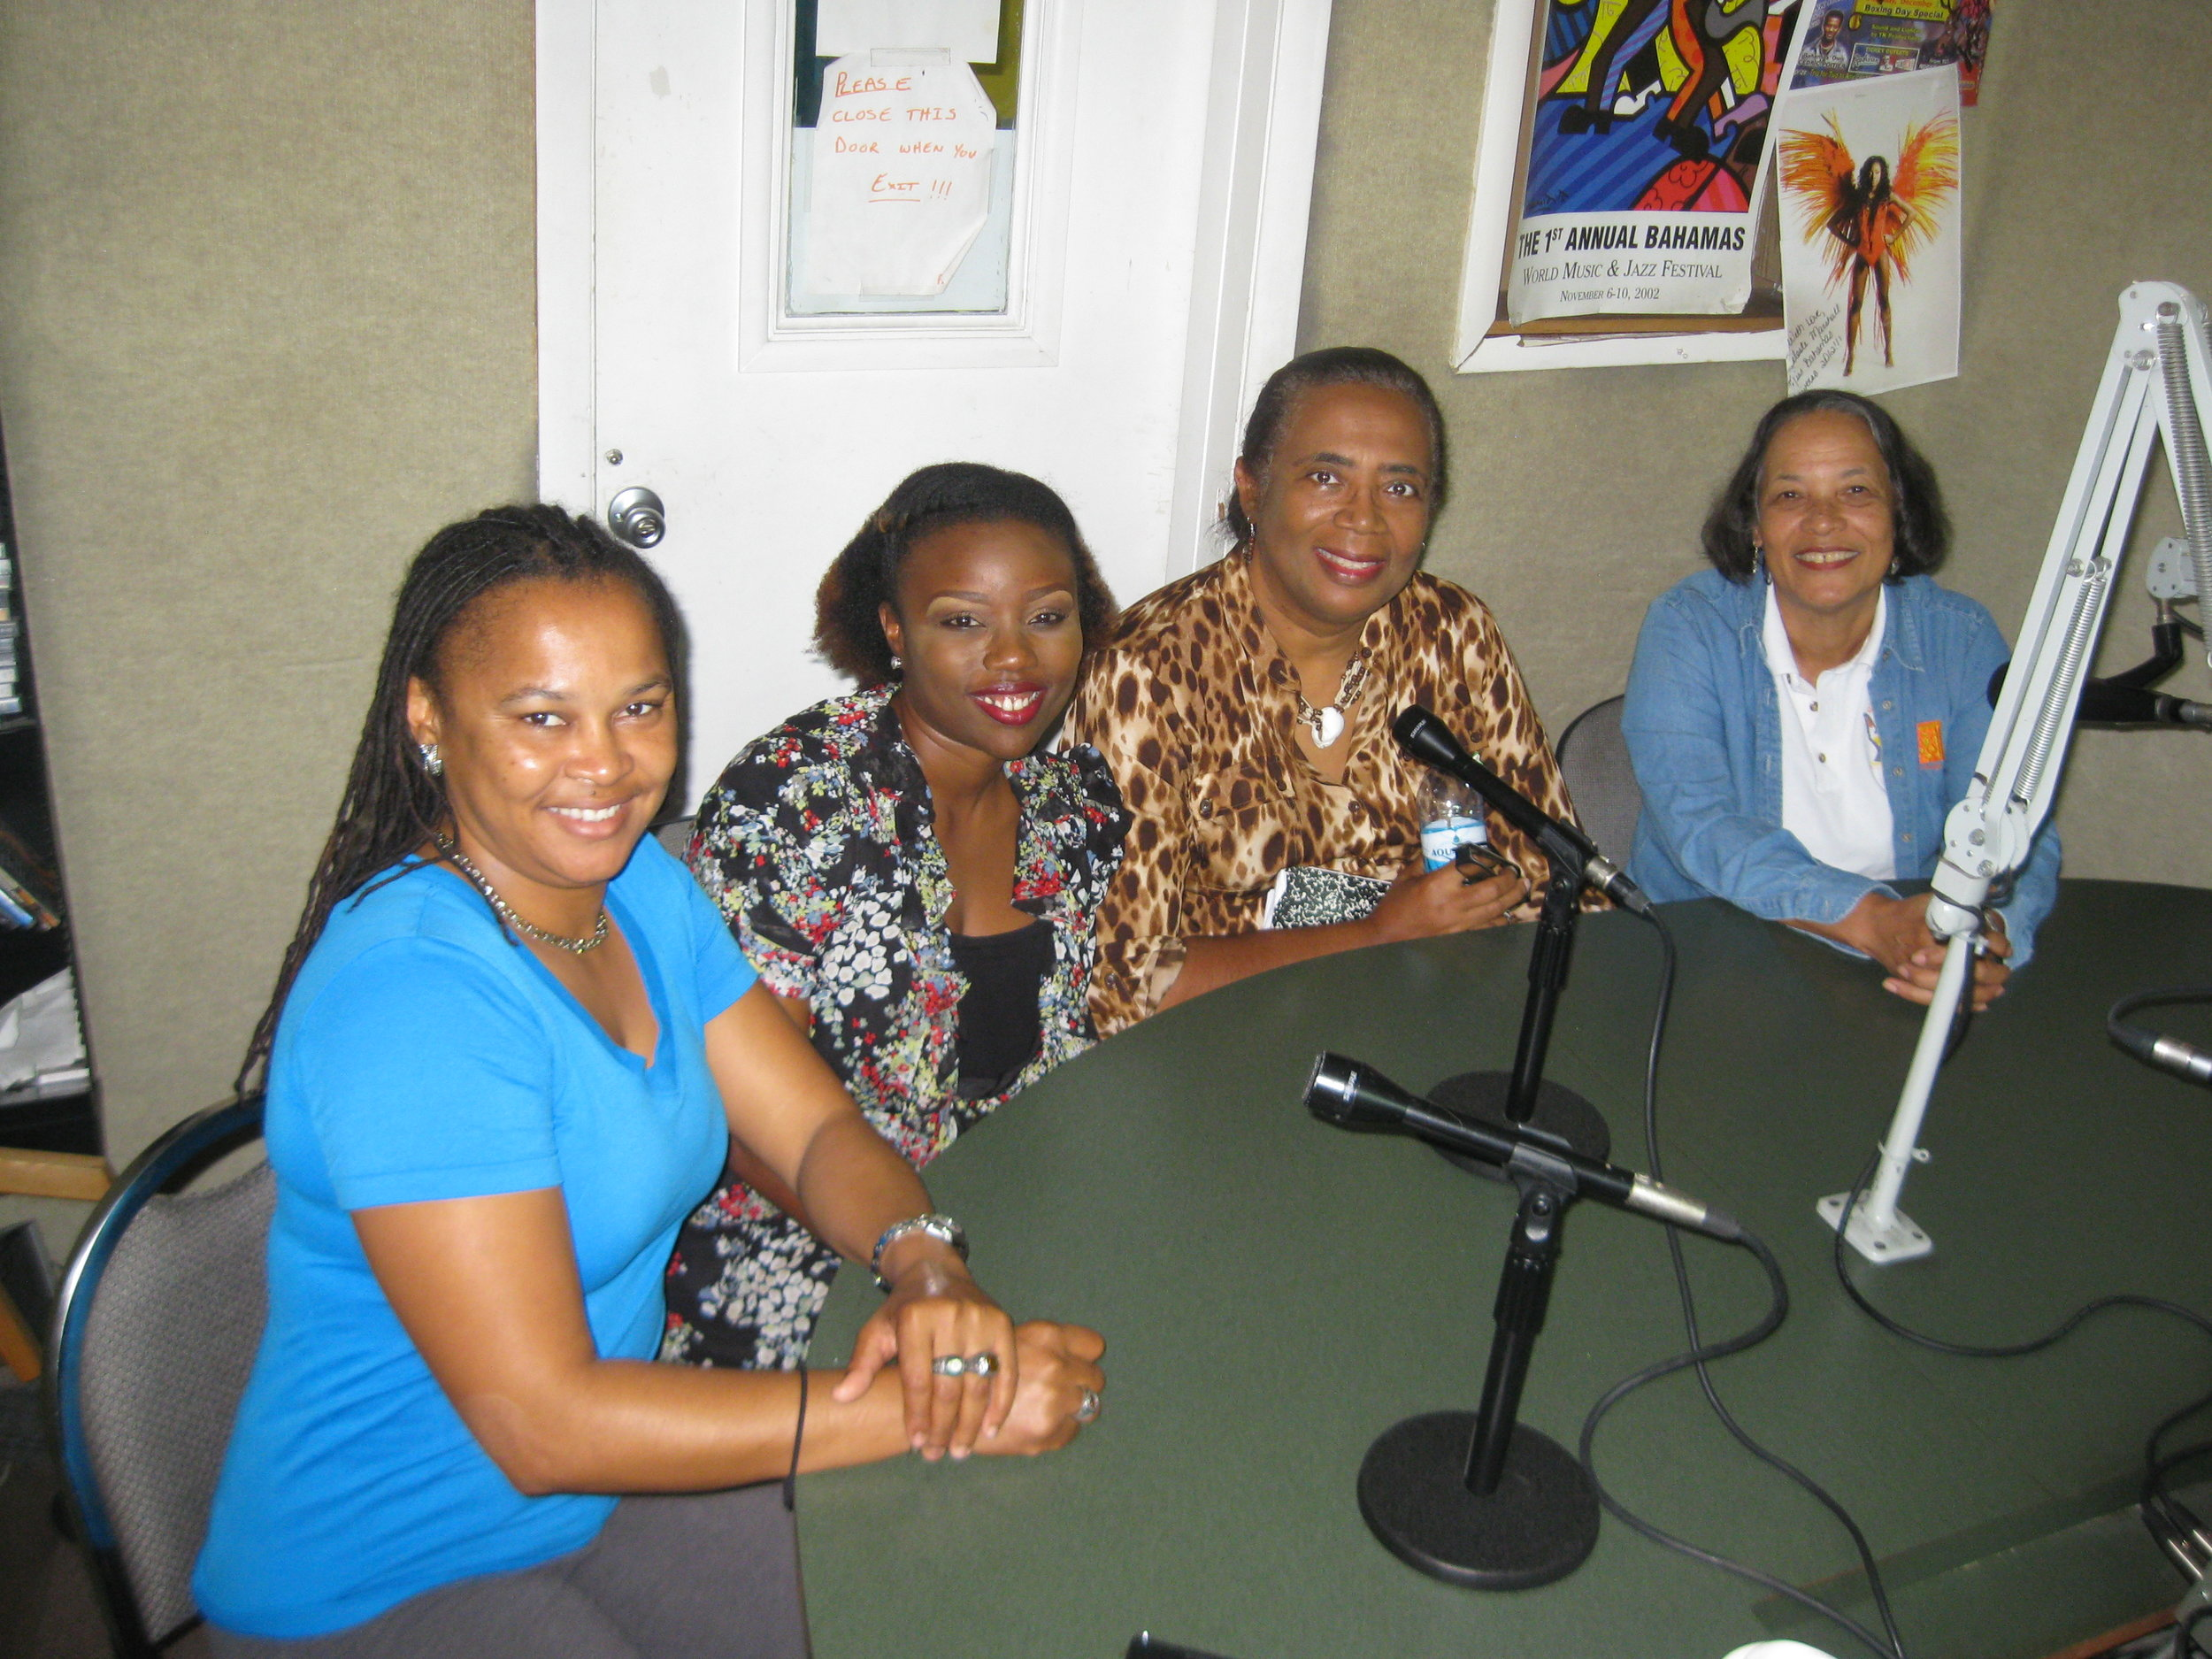 From left to right in the Island FM 102.9 recording Studio: Straw shoe designer Keesha Pratt, shoe designer Dandreia Bethel, Patti and Pam